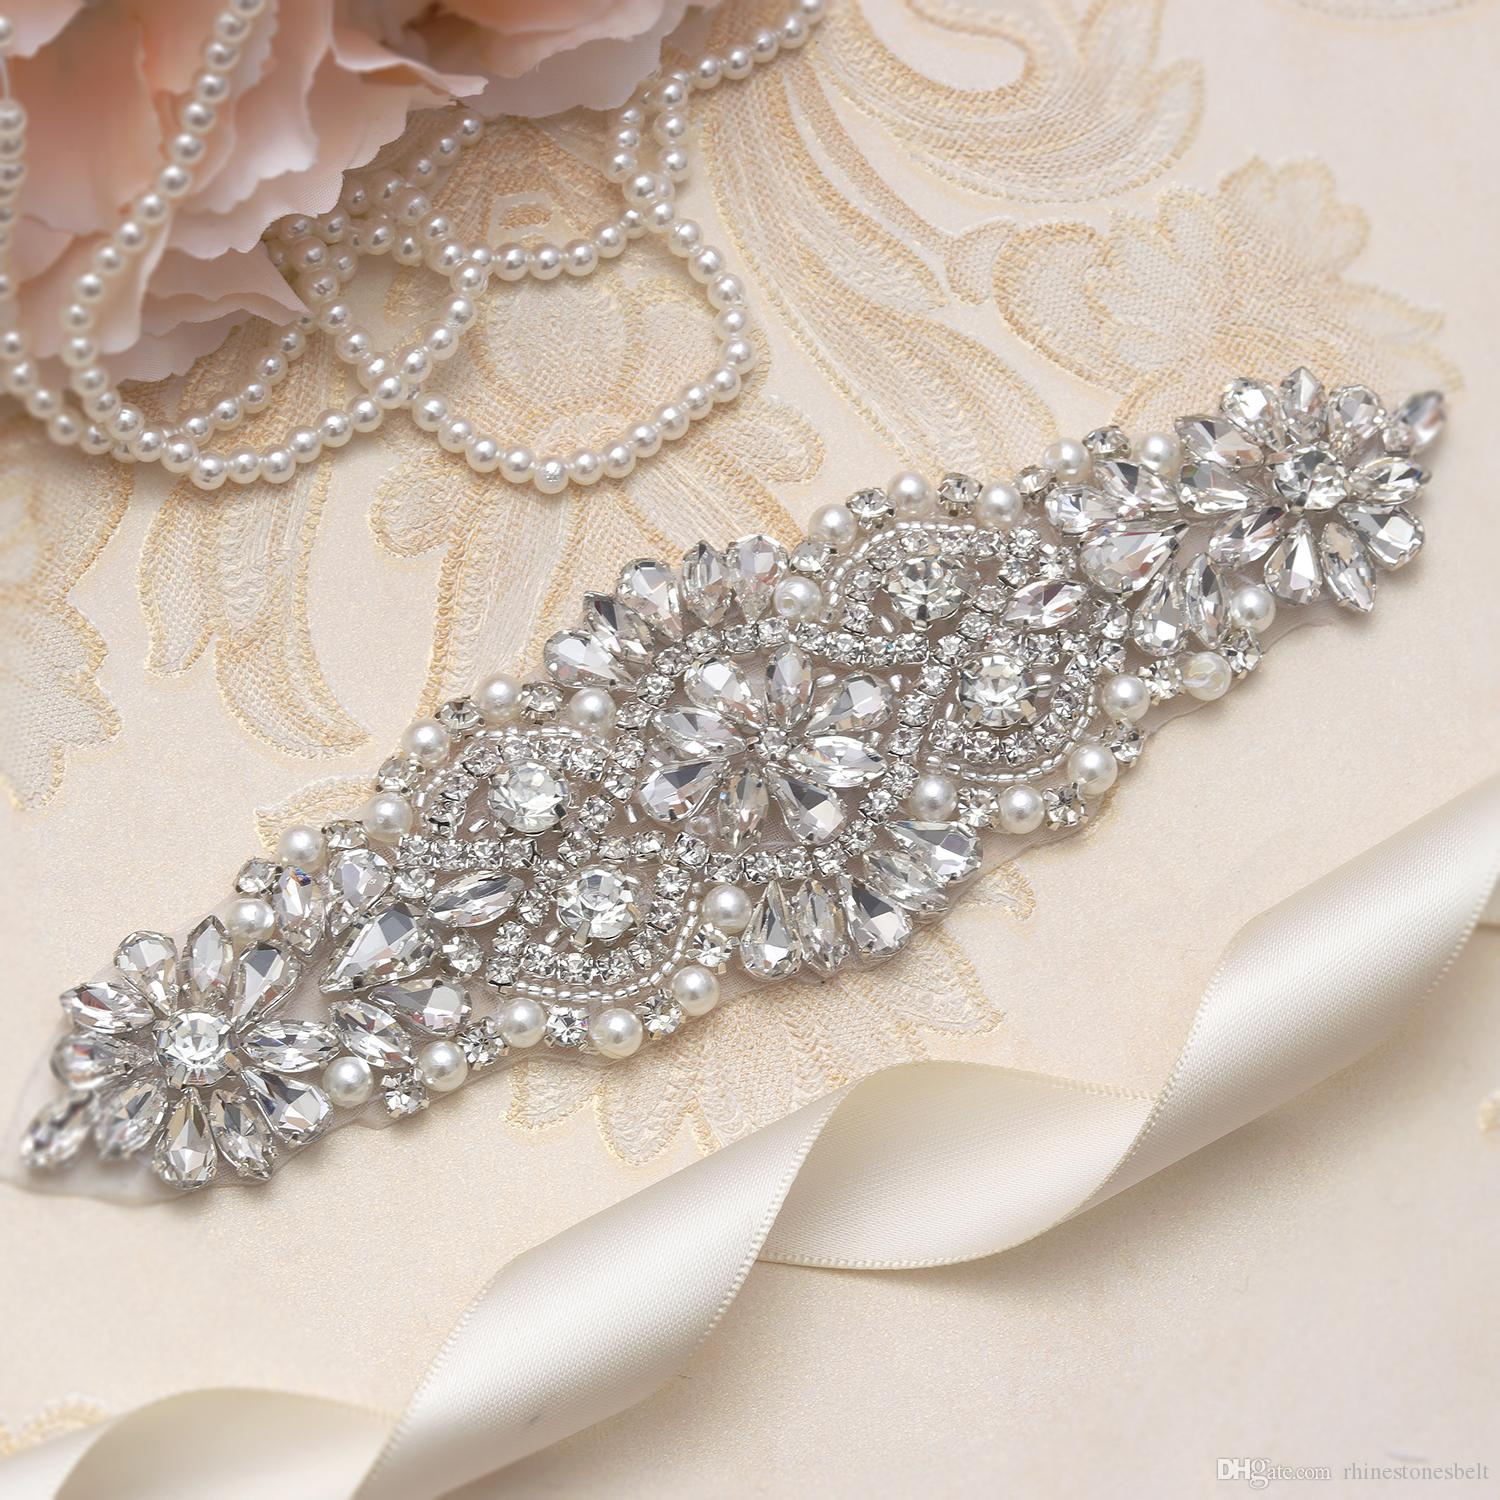 ec9d9a24ec MissRDress Handmade Wedding Sashes Belt Silver Rhinestones Ribbons Bridal  Belt And Sash For Wedding Dress YS849